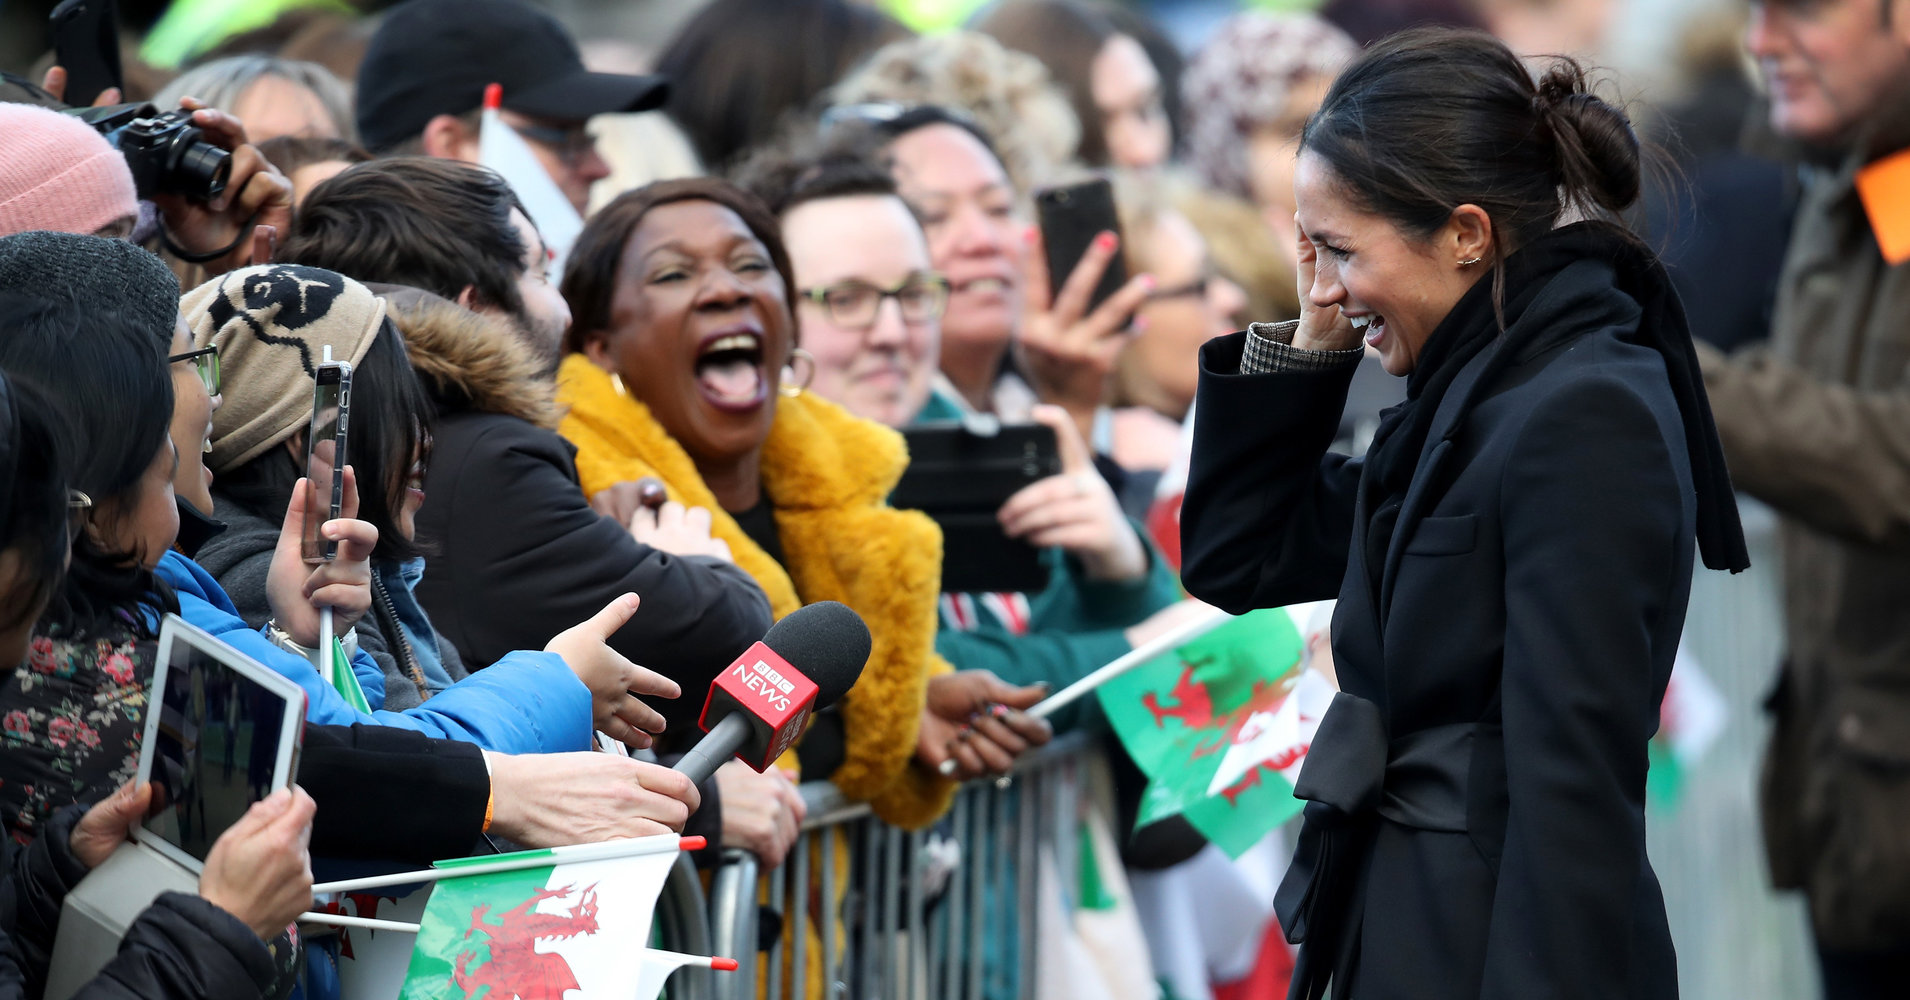 These Fans Meeting Prince Harry And Meghan Markle Just Couldn't Contain Their Glee